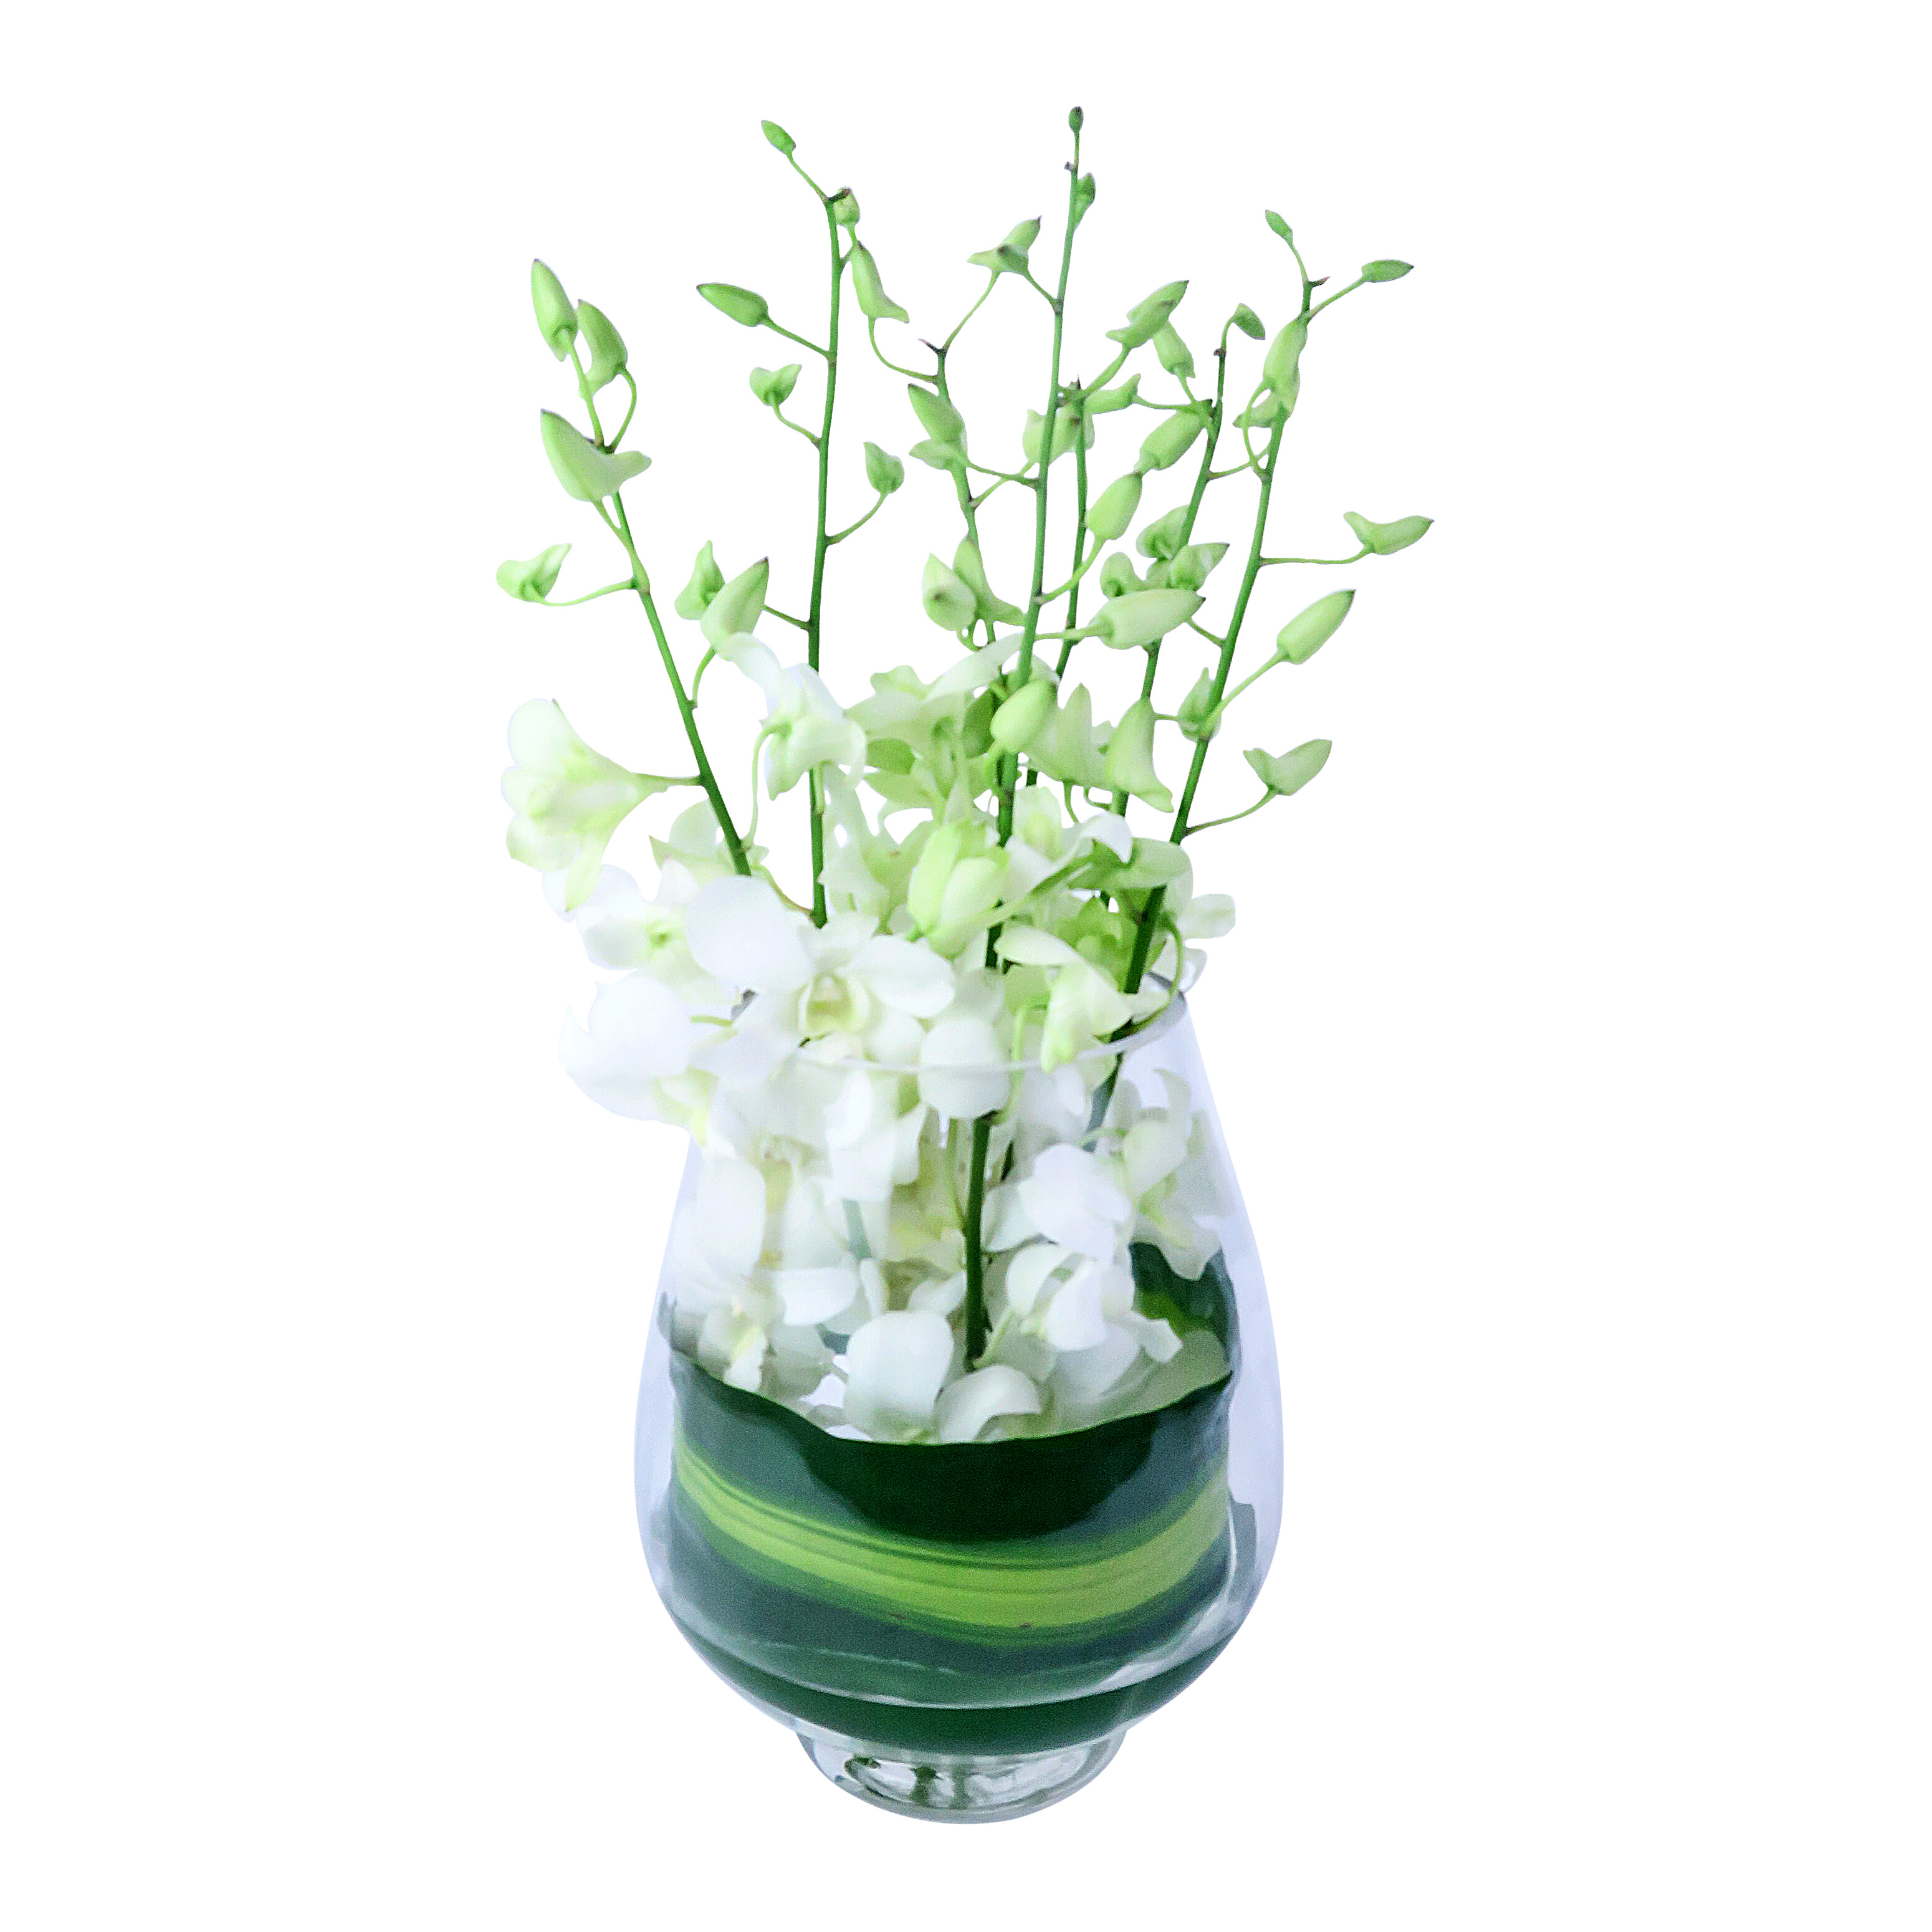 Flower delivery sydney sydney flowers from just 25 posies table centrepieces izmirmasajfo